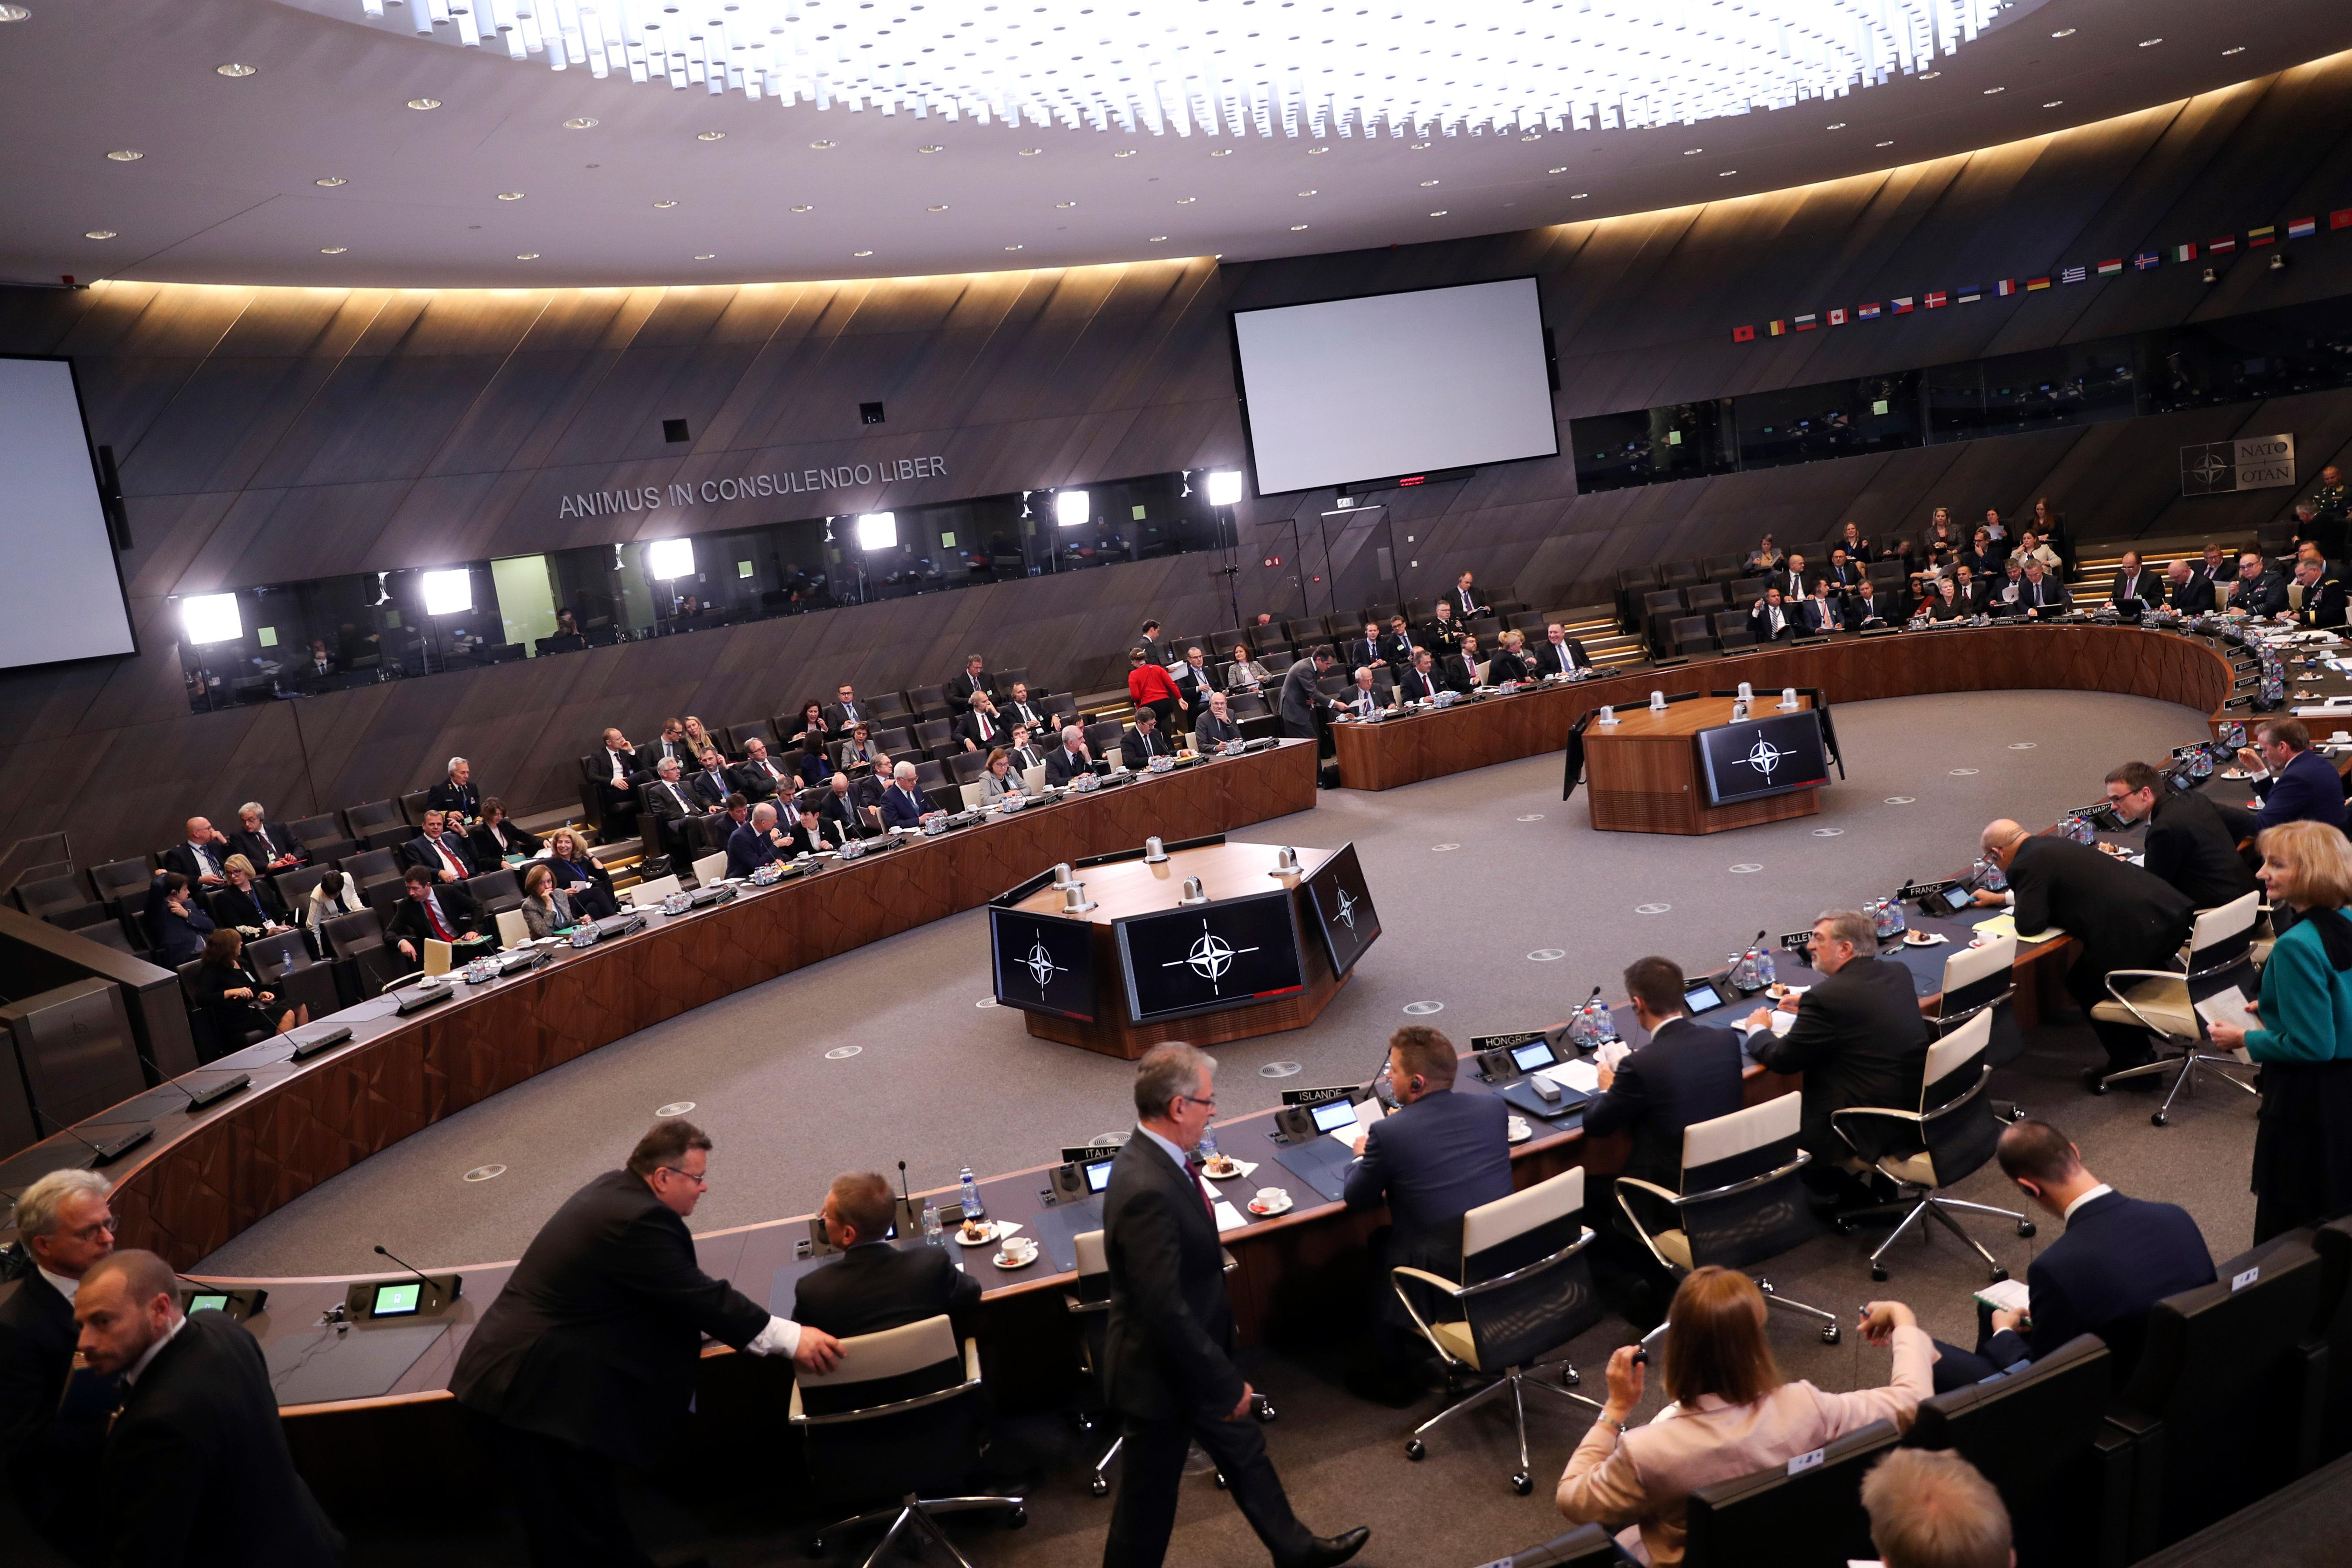 A general view of a meeting of the North Atlantic Council at NATO headquarters in Brussels, Tuesday, Dec. 4, 2018. Russia takes center-stage at NATO Tuesday, as allied foreign ministers meet to debate ways to dissuade Moscow from destabilizing Ukraine and respect a landmark Cold-war era nuclear treaty. (AP Photo/Francisco Seco)